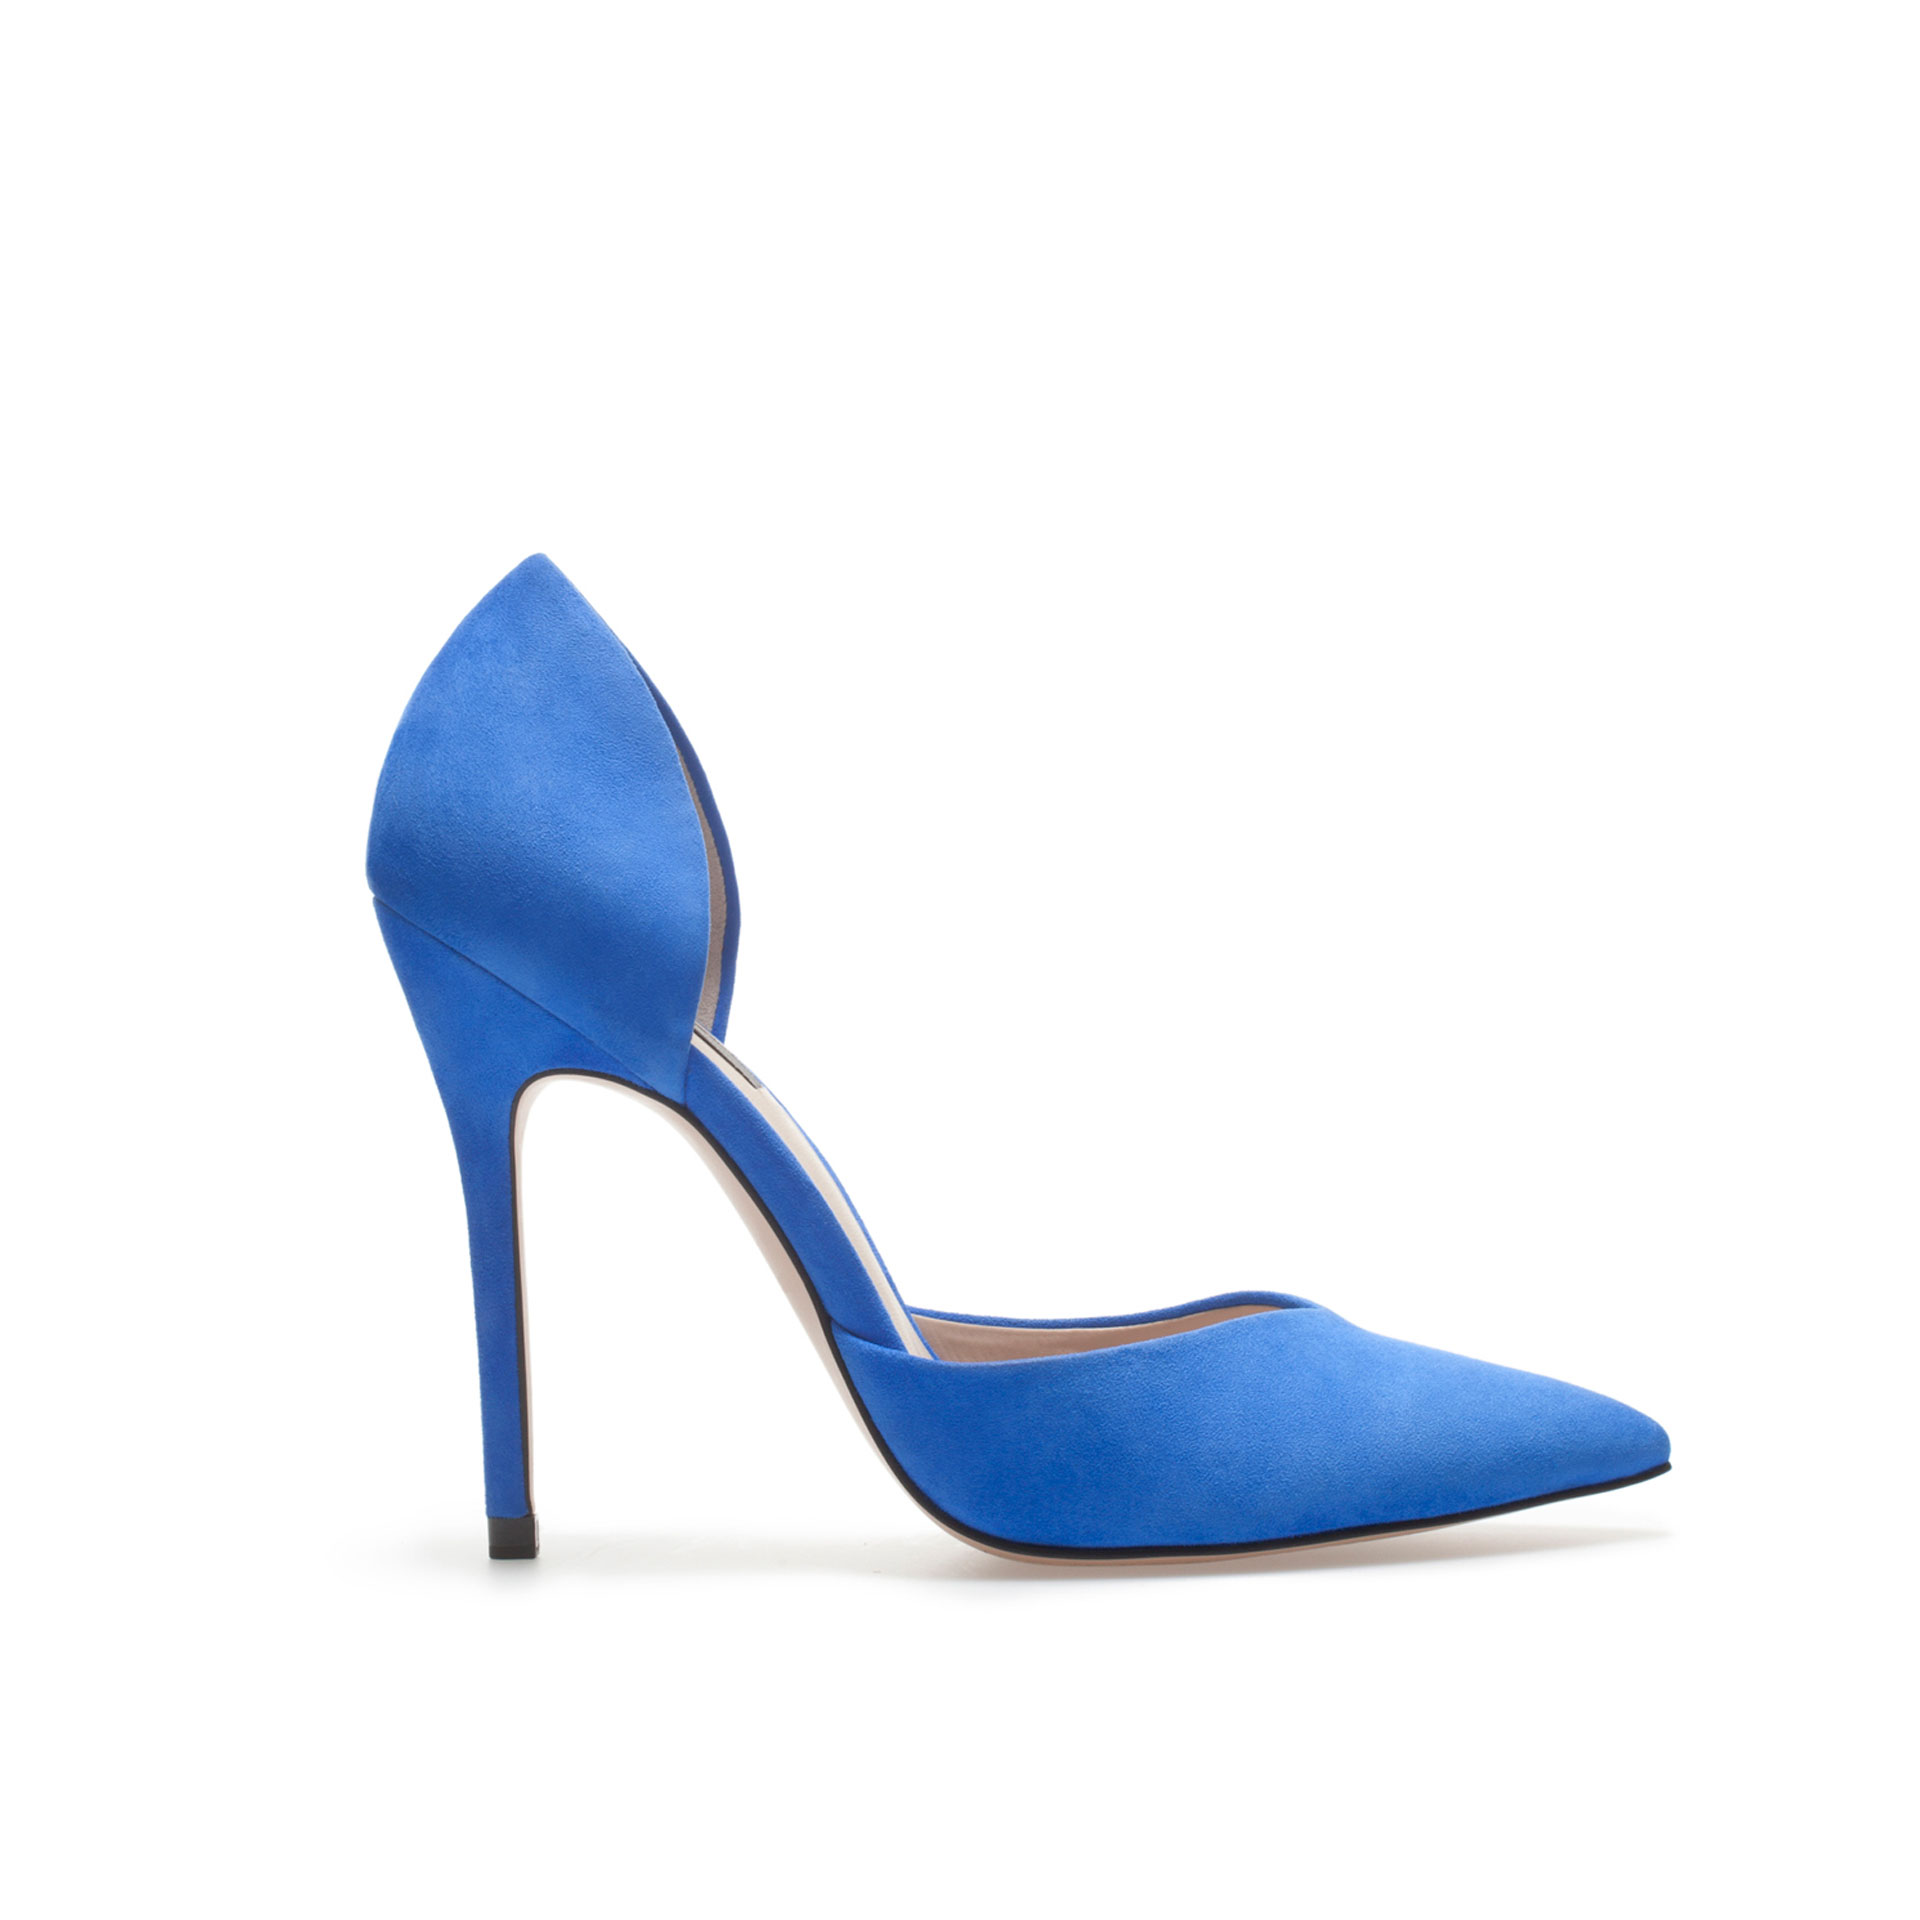 Zara High Heel Vamp Shoe In Blue Lyst